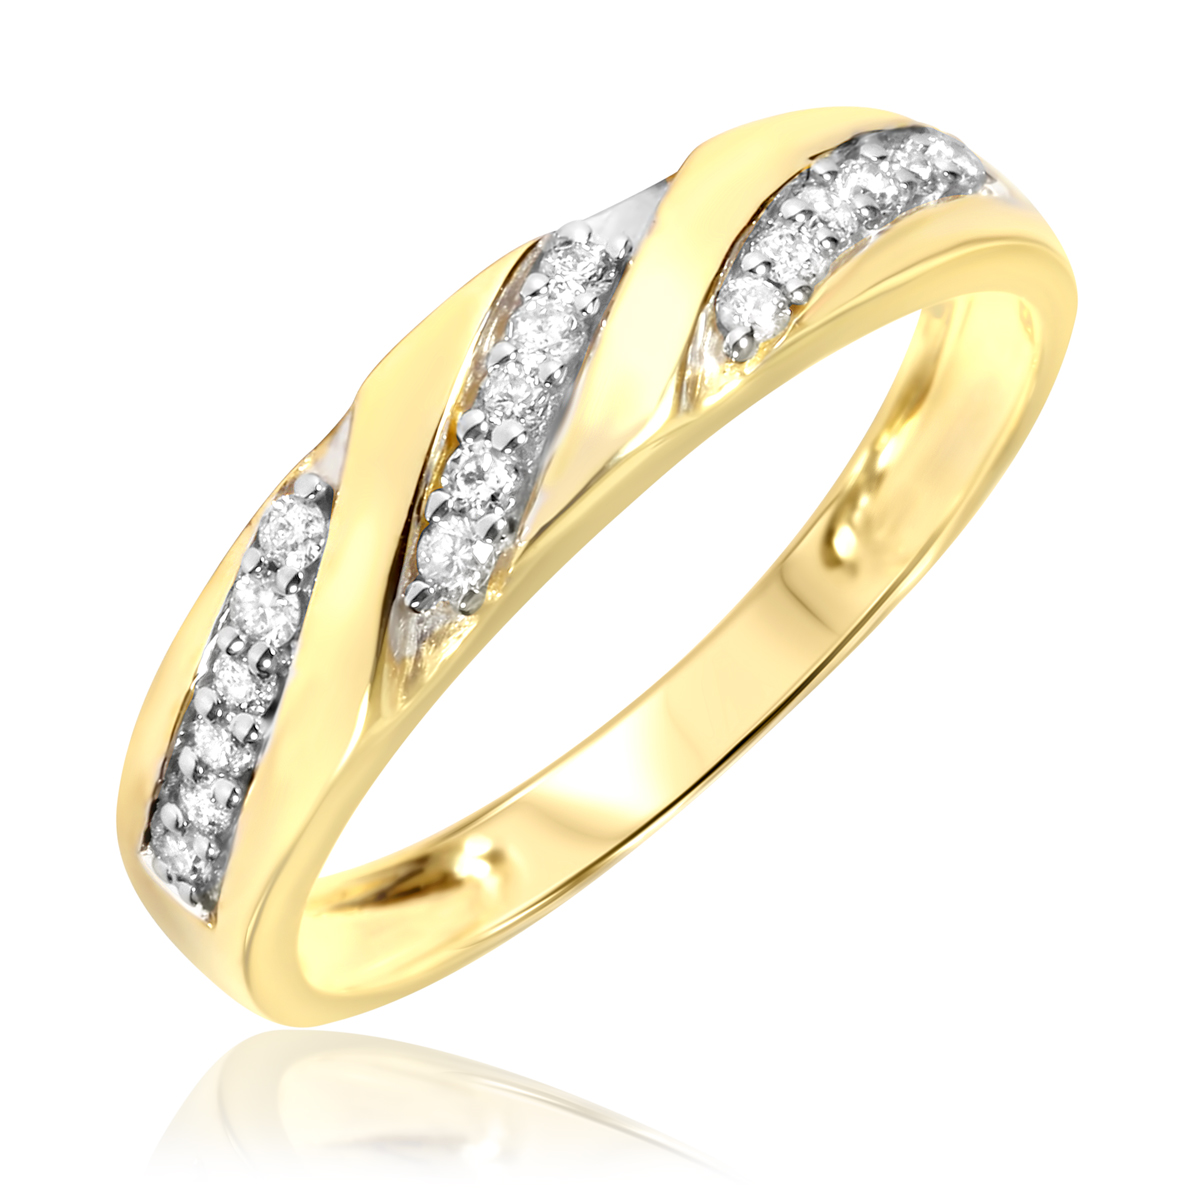 1 Carat Diamond Trio Wedding Ring Set 10K Yellow Gold My Trio Rings